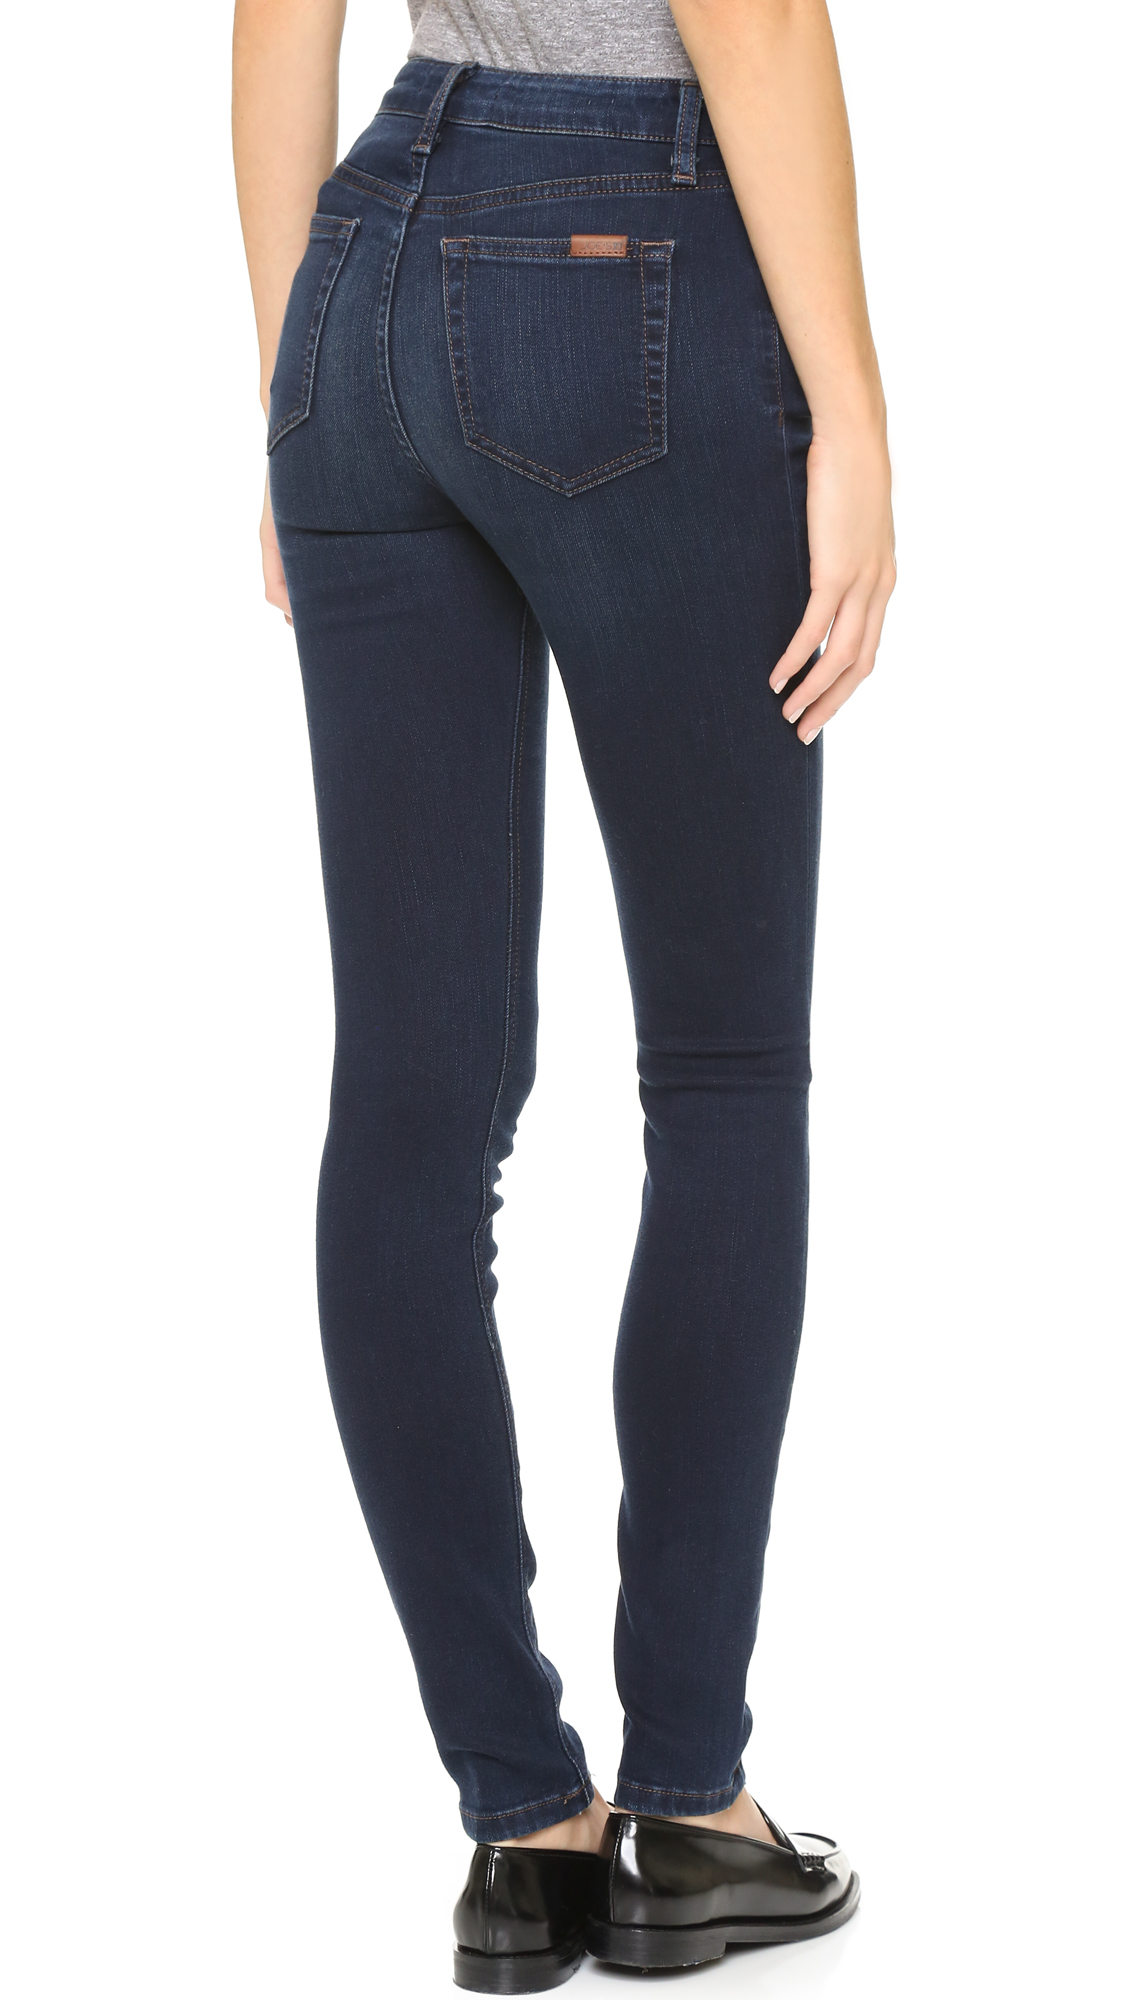 e62121238856 Lyst - Joe s Jeans Charlie High Rise Skinny Jeans in Blue